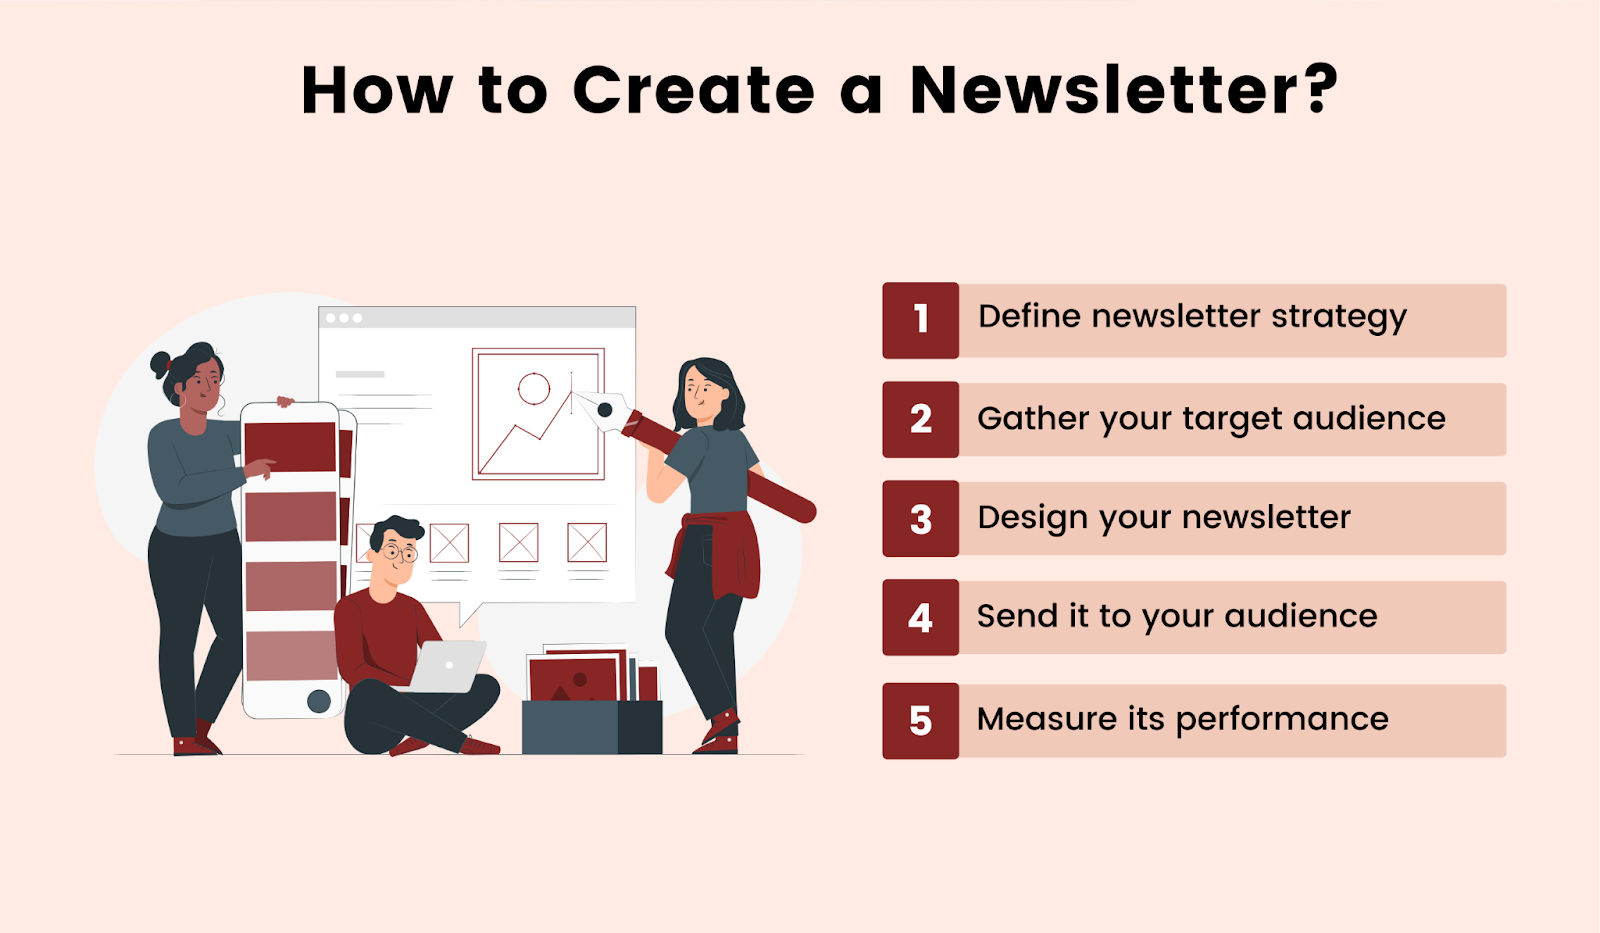 5 steps for how to create a newsletter